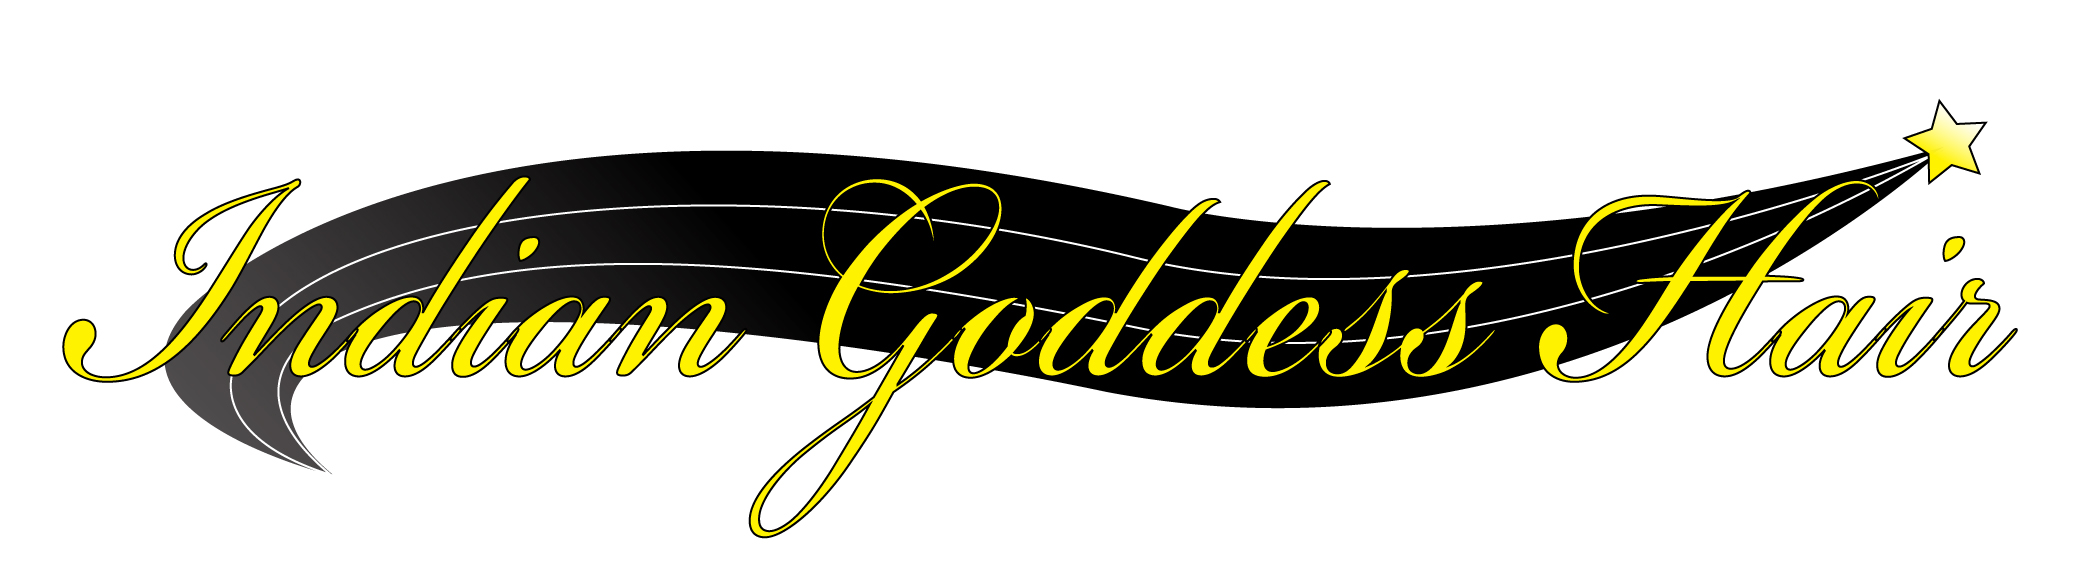 Logo Design by Genesis Orland Colendres - Entry No. 2 in the Logo Design Contest Indian Goddess Hair LOGO DESIGN.